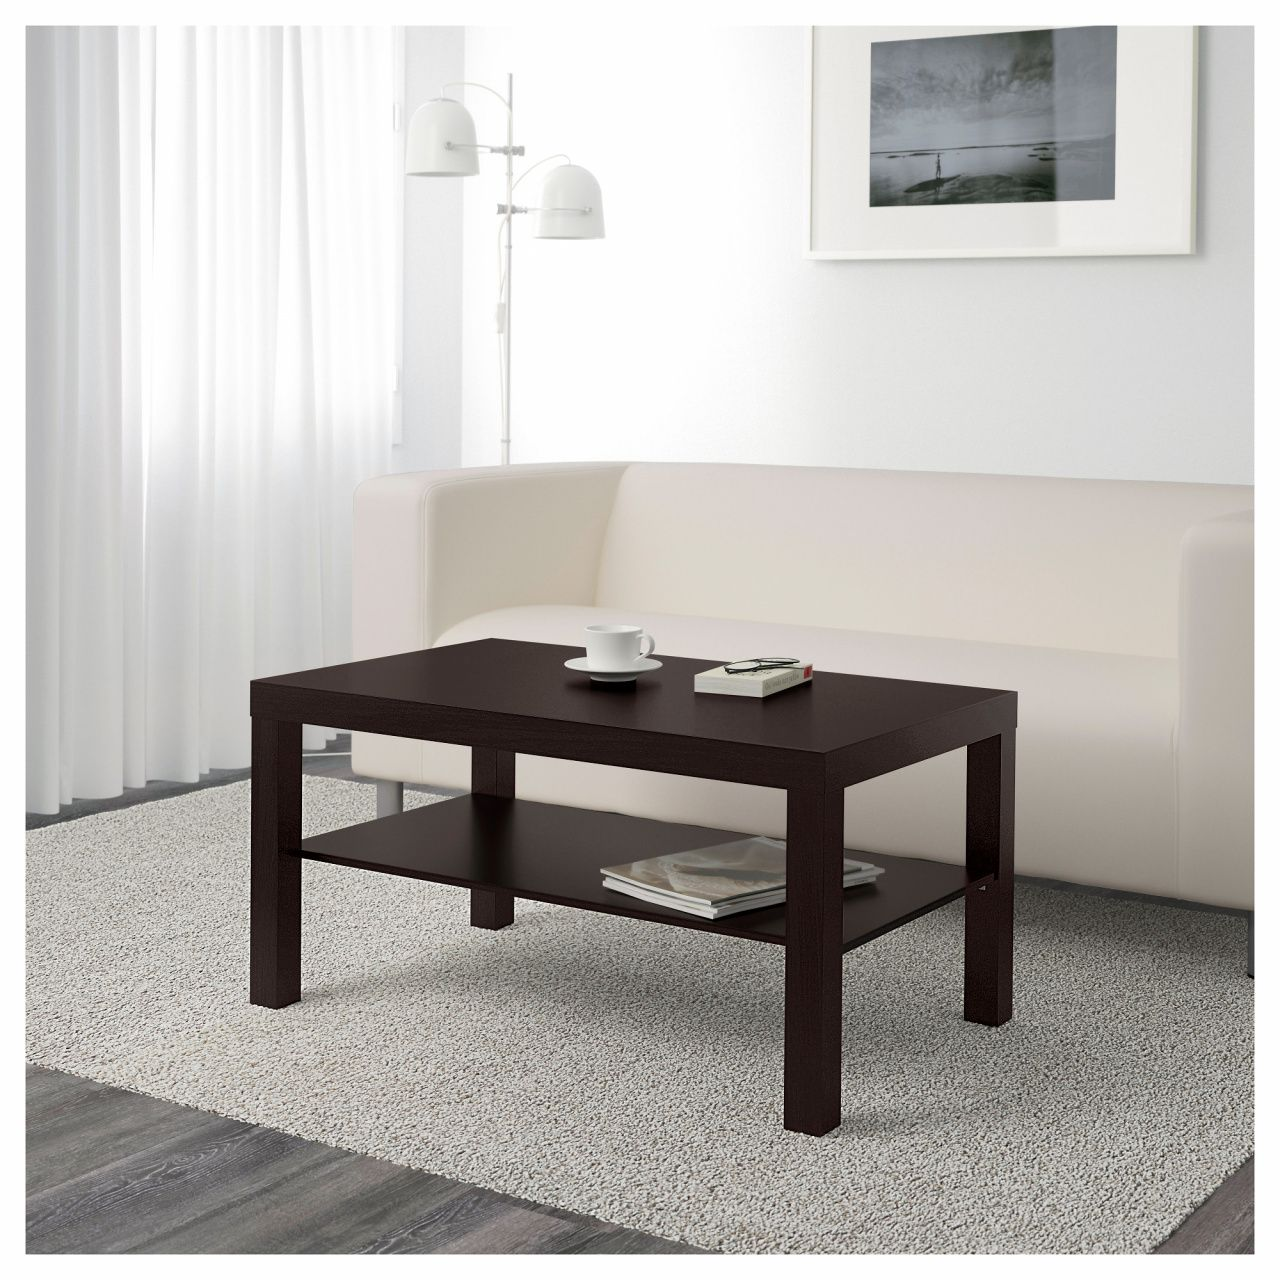 Ikea Lack sofa Table - Used Home Office Furniture Check more at http ...